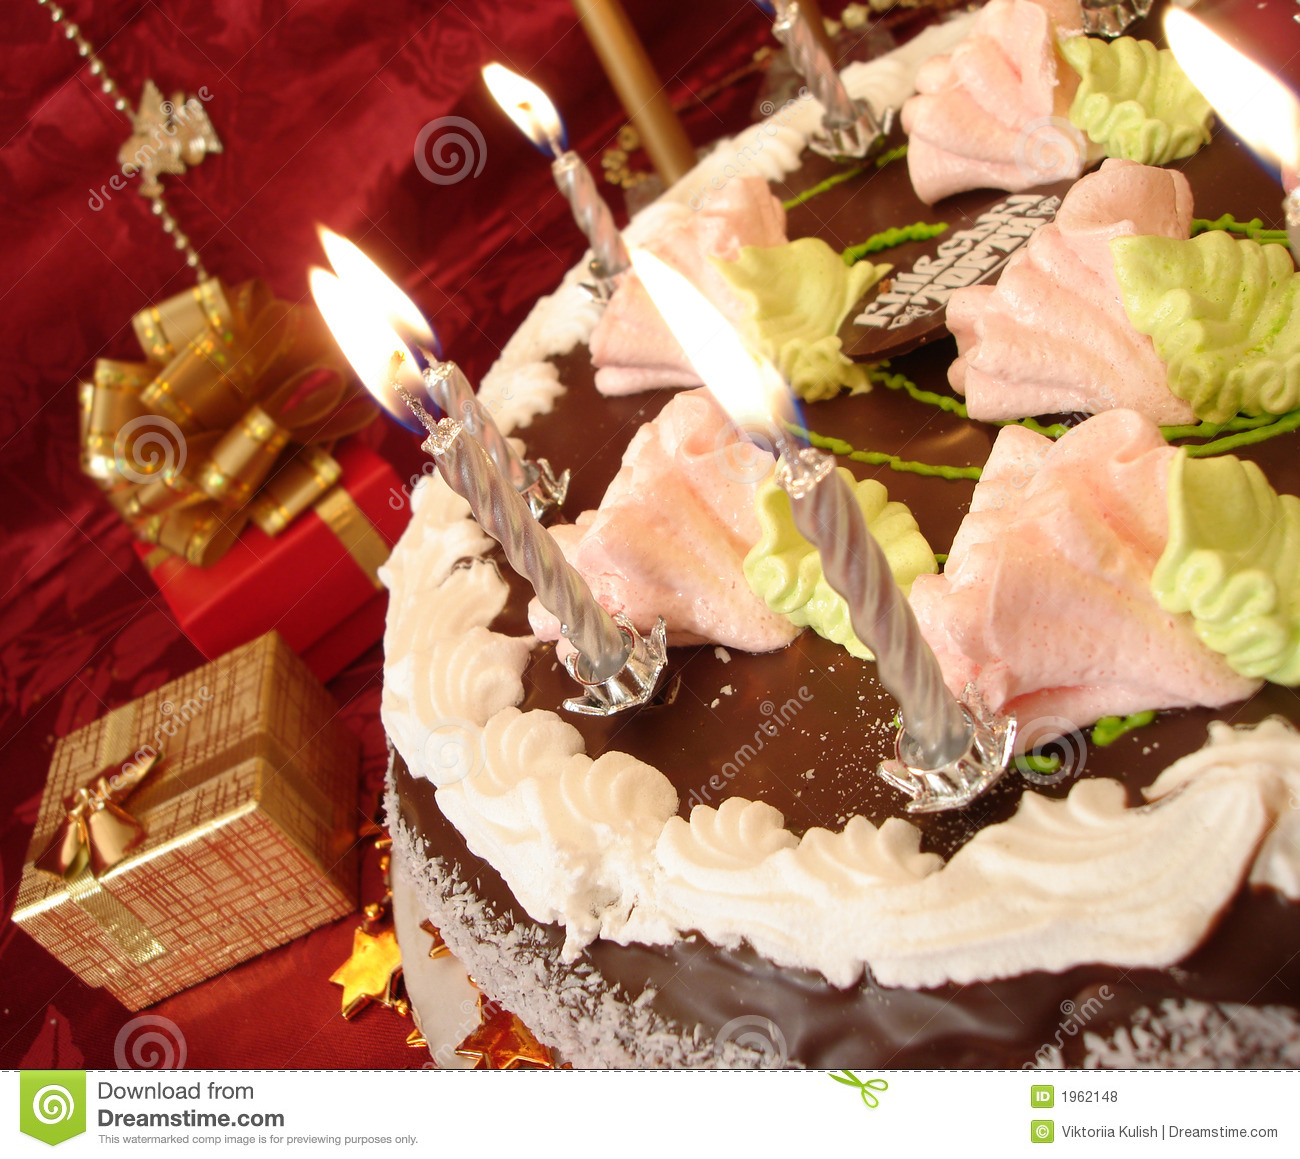 Celebratory table birthday cake and candles gift boxes on red celebratory table birthday cake and candles gift boxes on red stock photo image of food burn 1962148 negle Choice Image